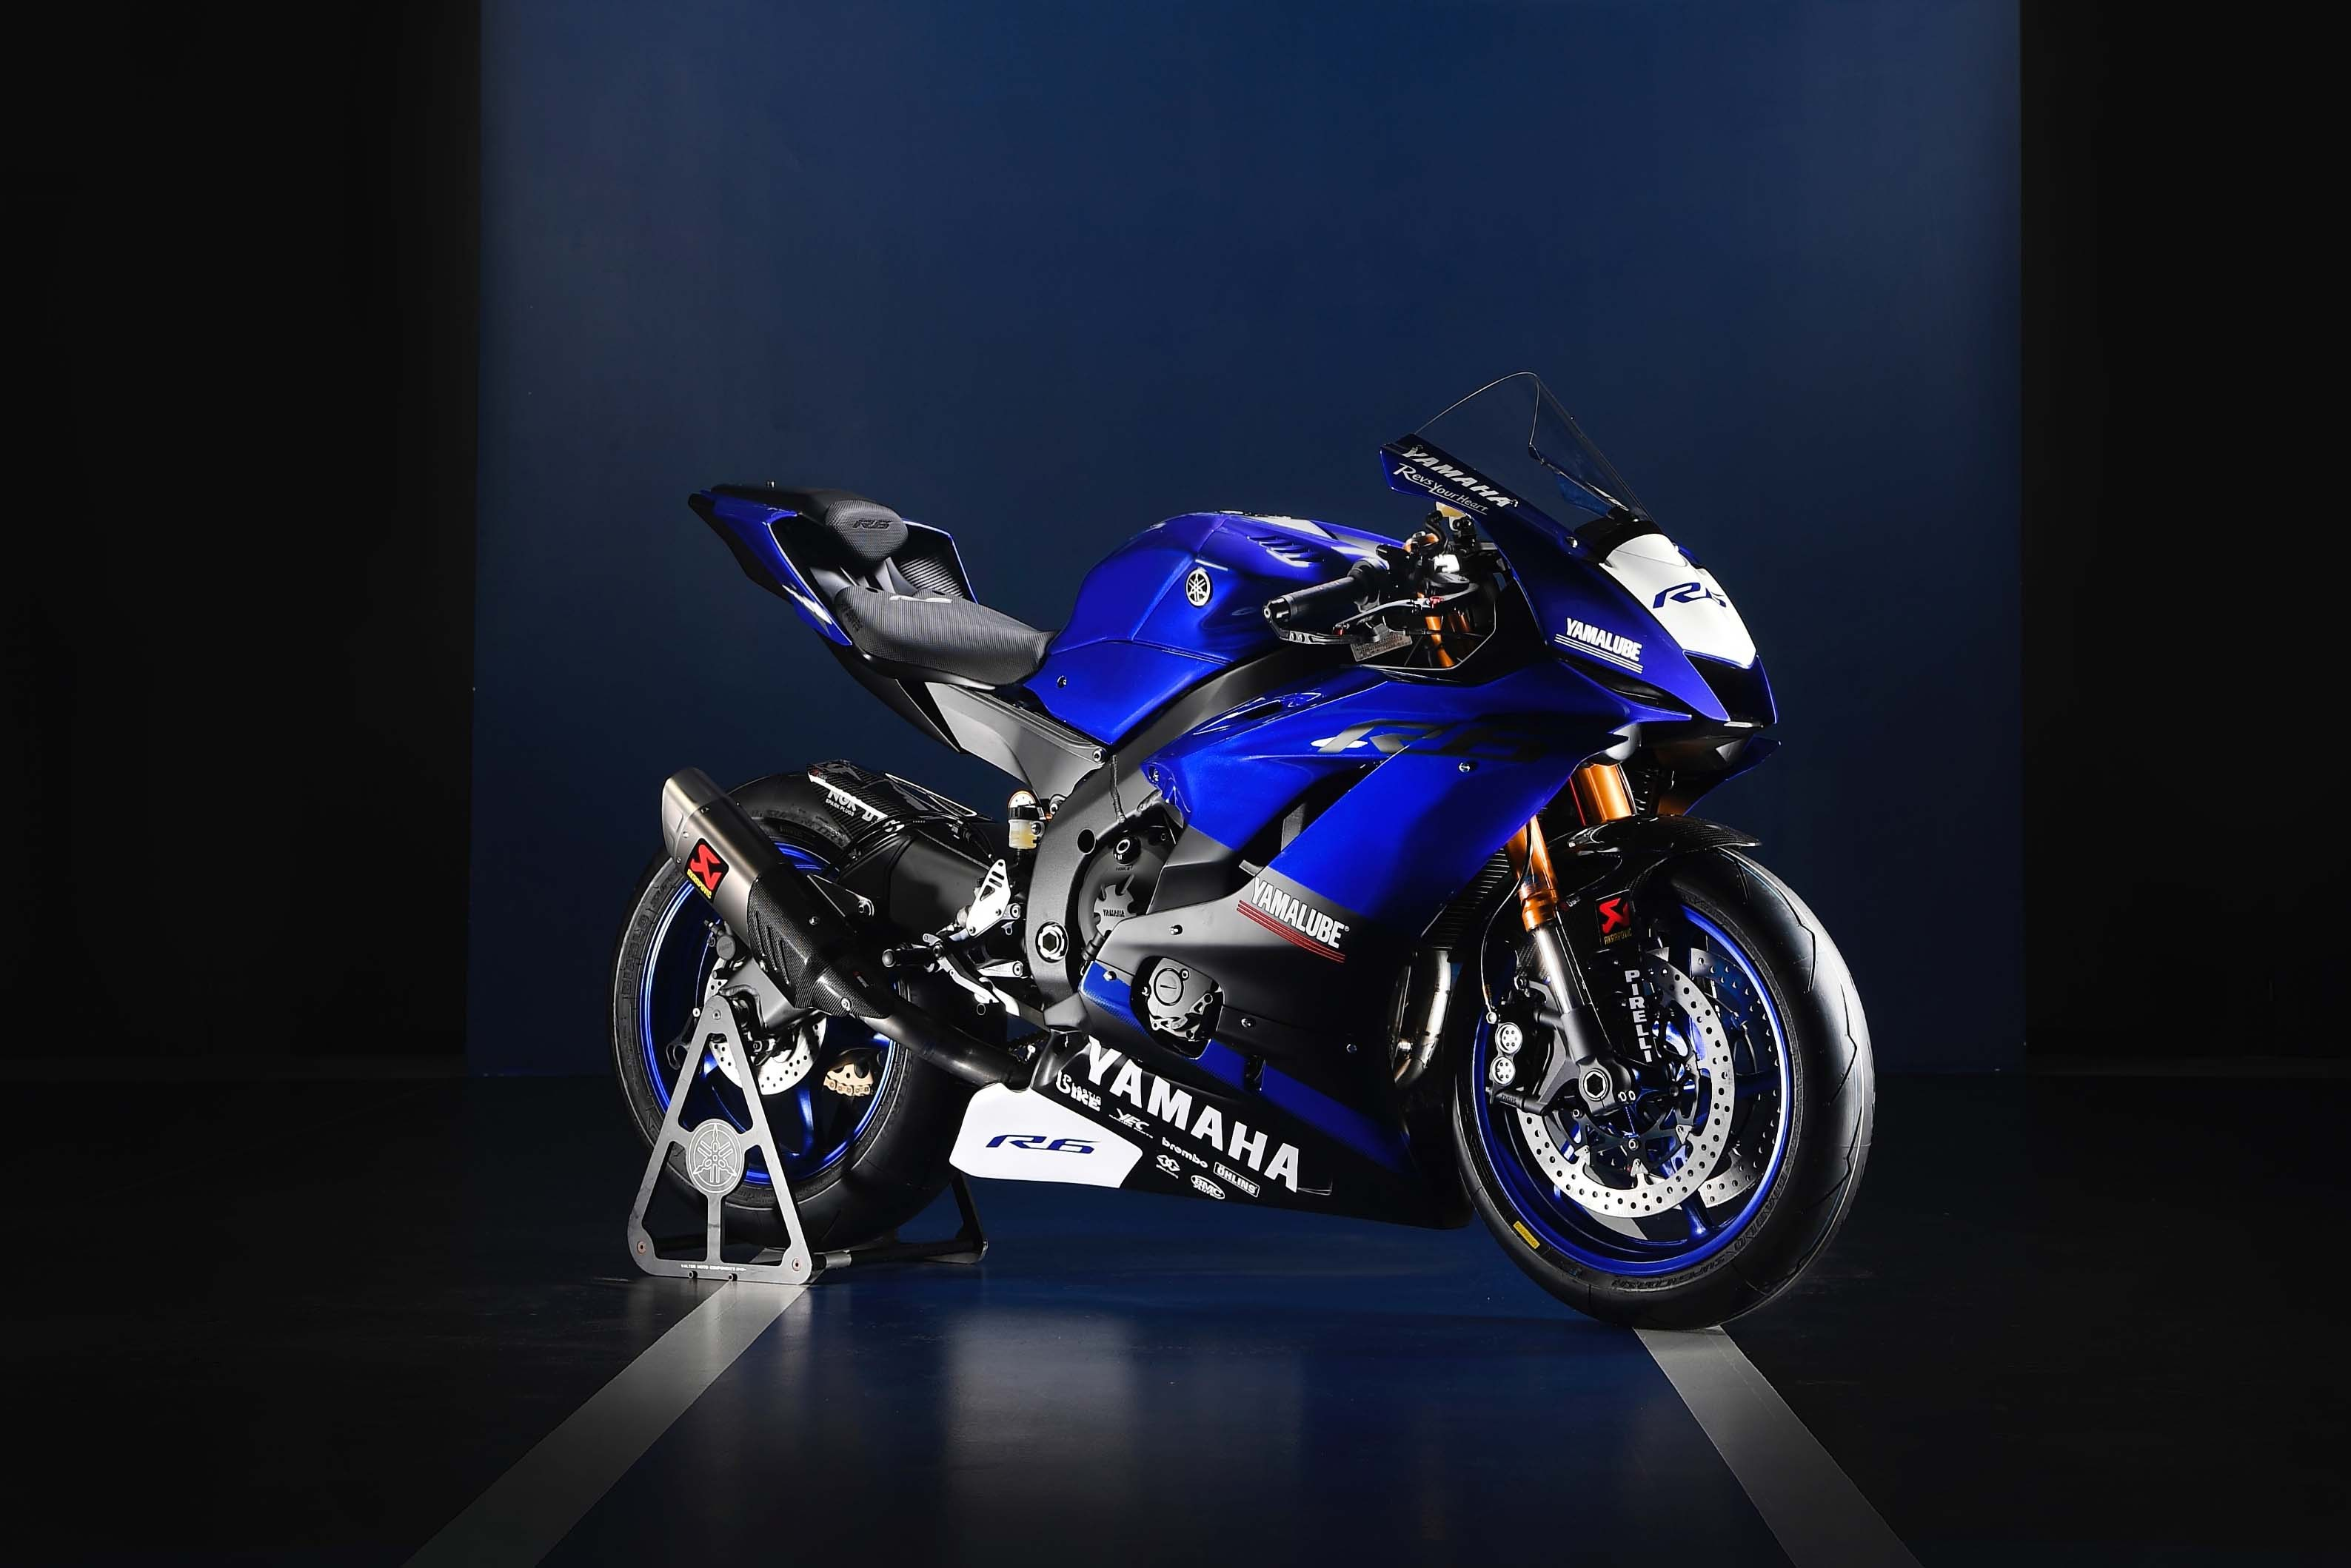 HQ Yamaha Yzf R6 Wallpapers | File 342.61Kb